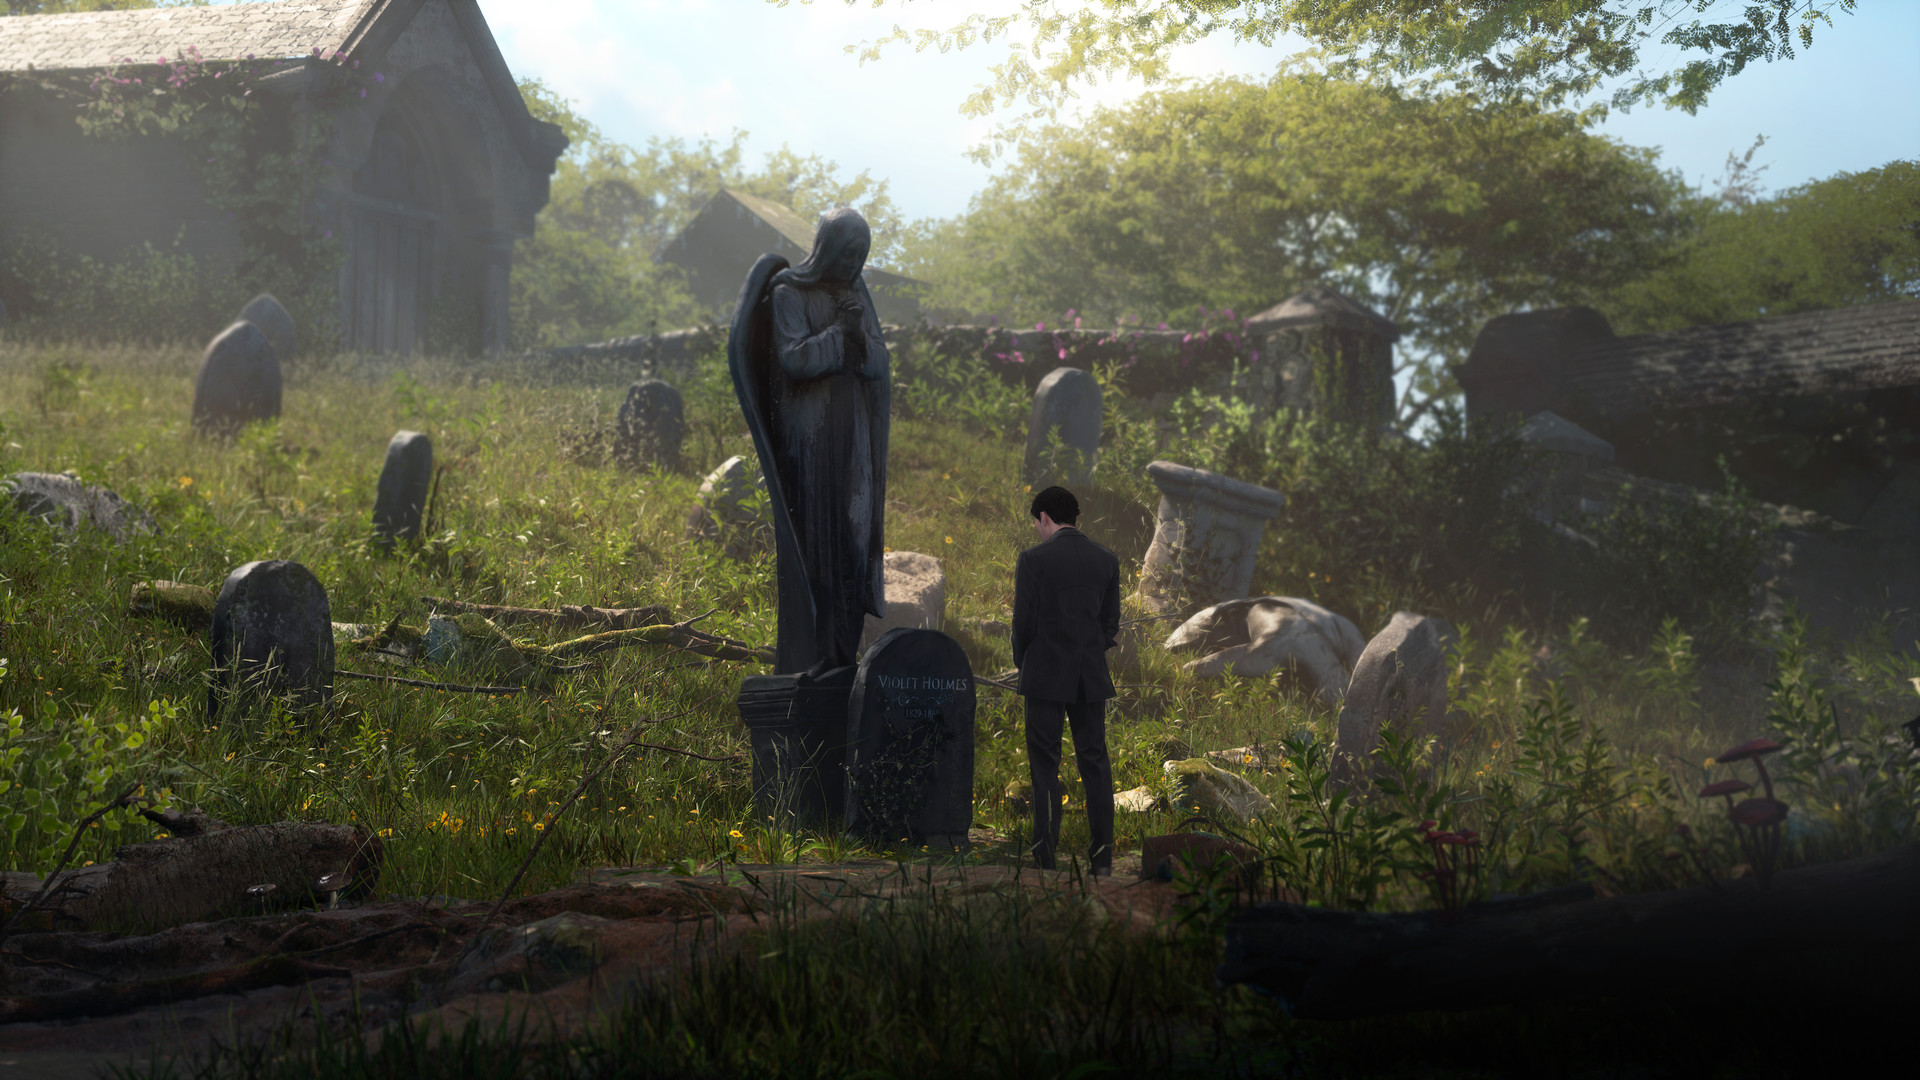 The young Sherlock stands, at middle distance, in front of a large grave topped by a sad-looking angel statue. His head is bowed, and he is obviously feeling sad too.